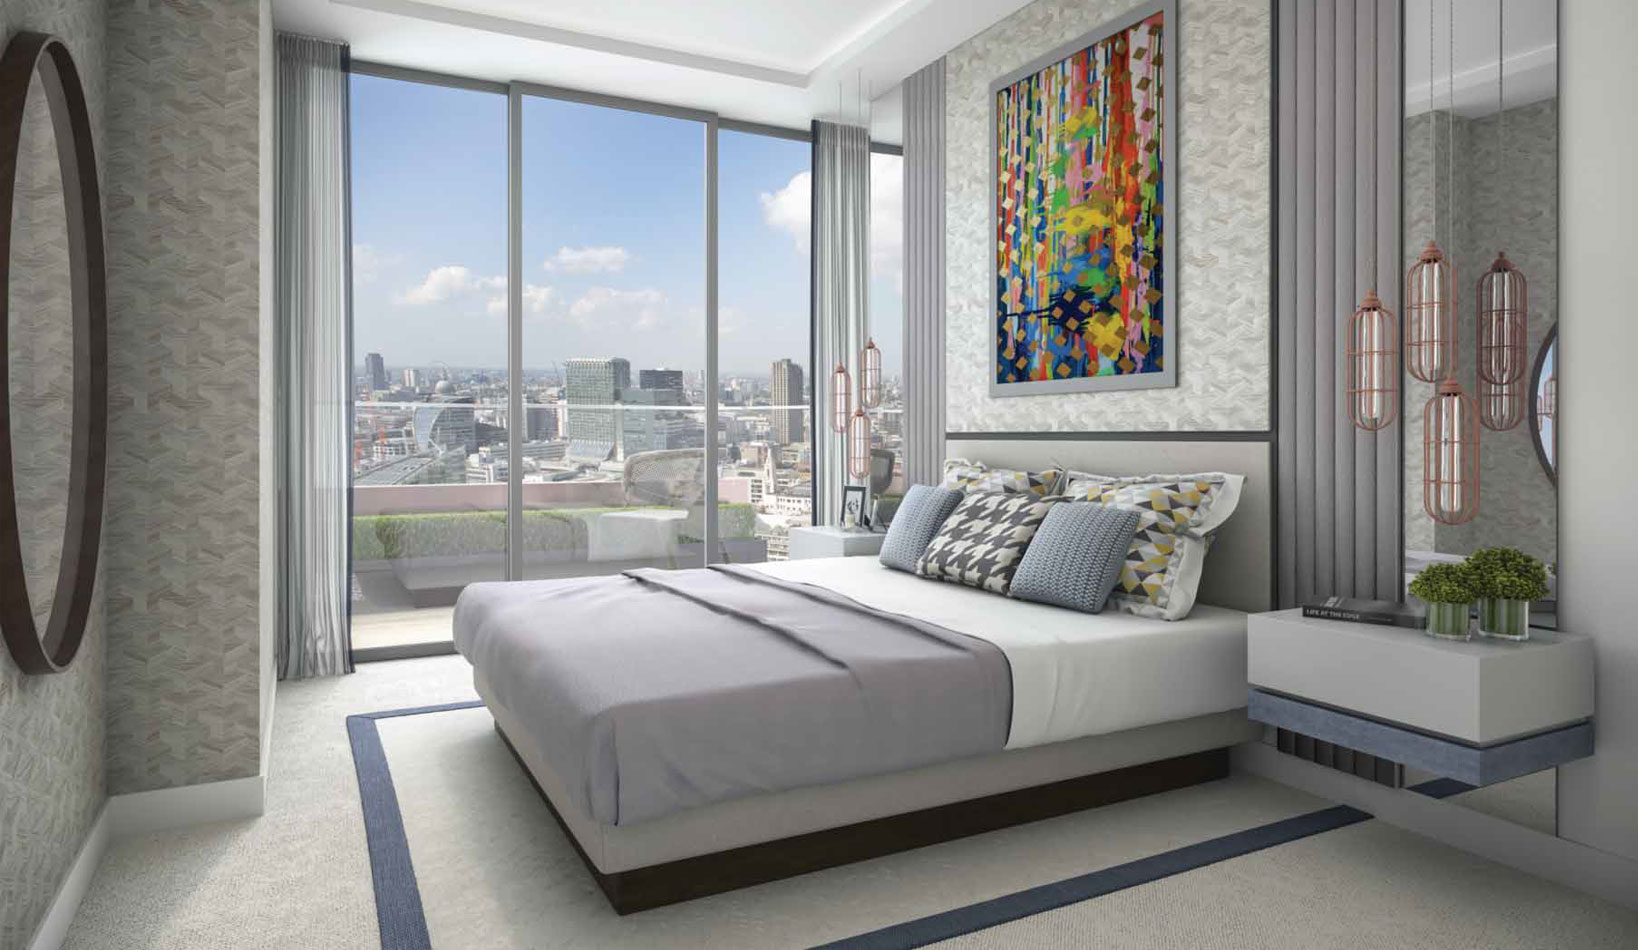 Property for Sale in The Stage by Galliard Homes, Shoreditch, Shoreditch, London, London, United Kingdom